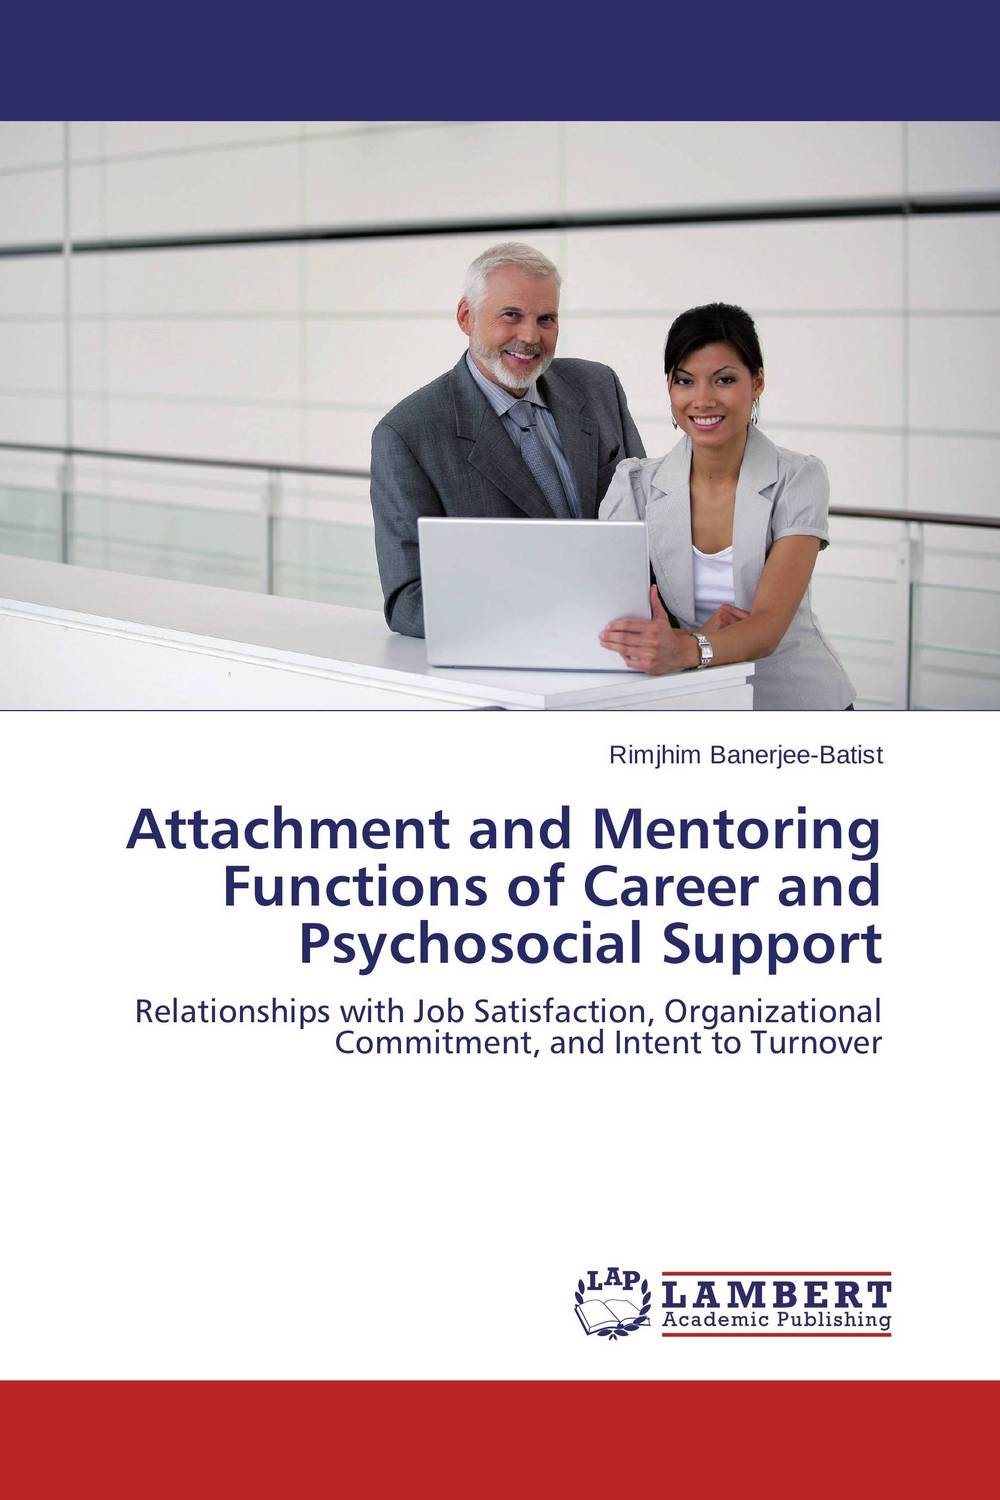 Attachment and Mentoring Functions of Career and Psychosocial Support